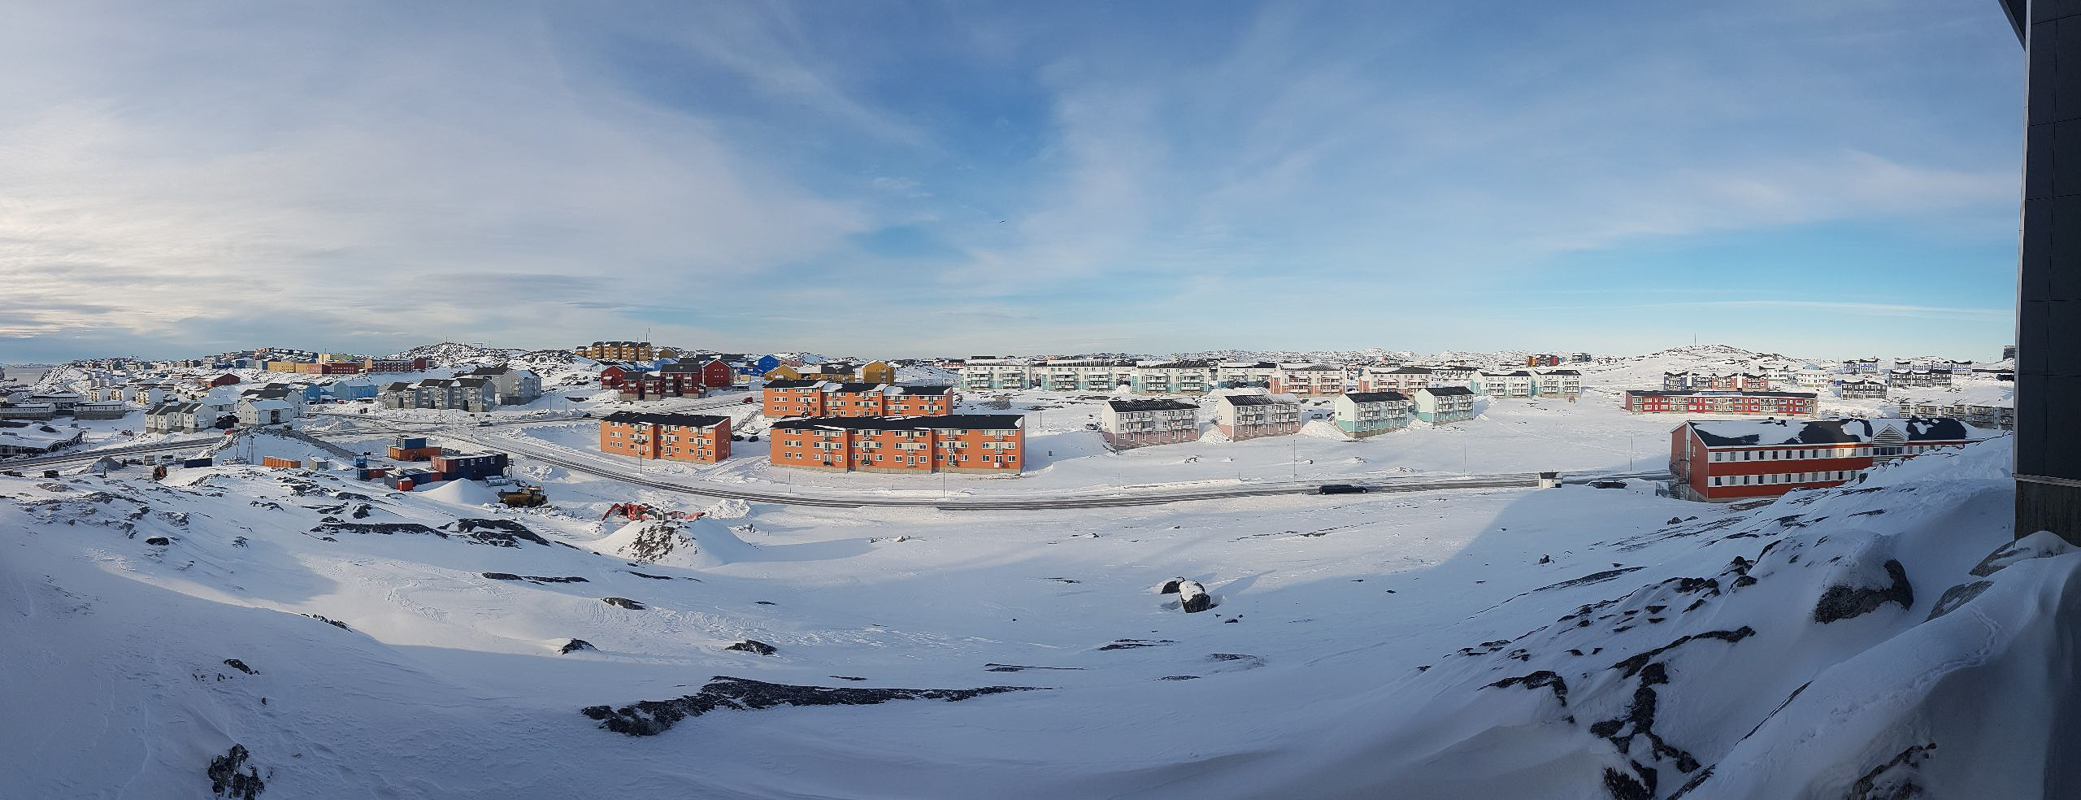 Panorama from the balcony of my small apartment in Nuuk - West Greenland